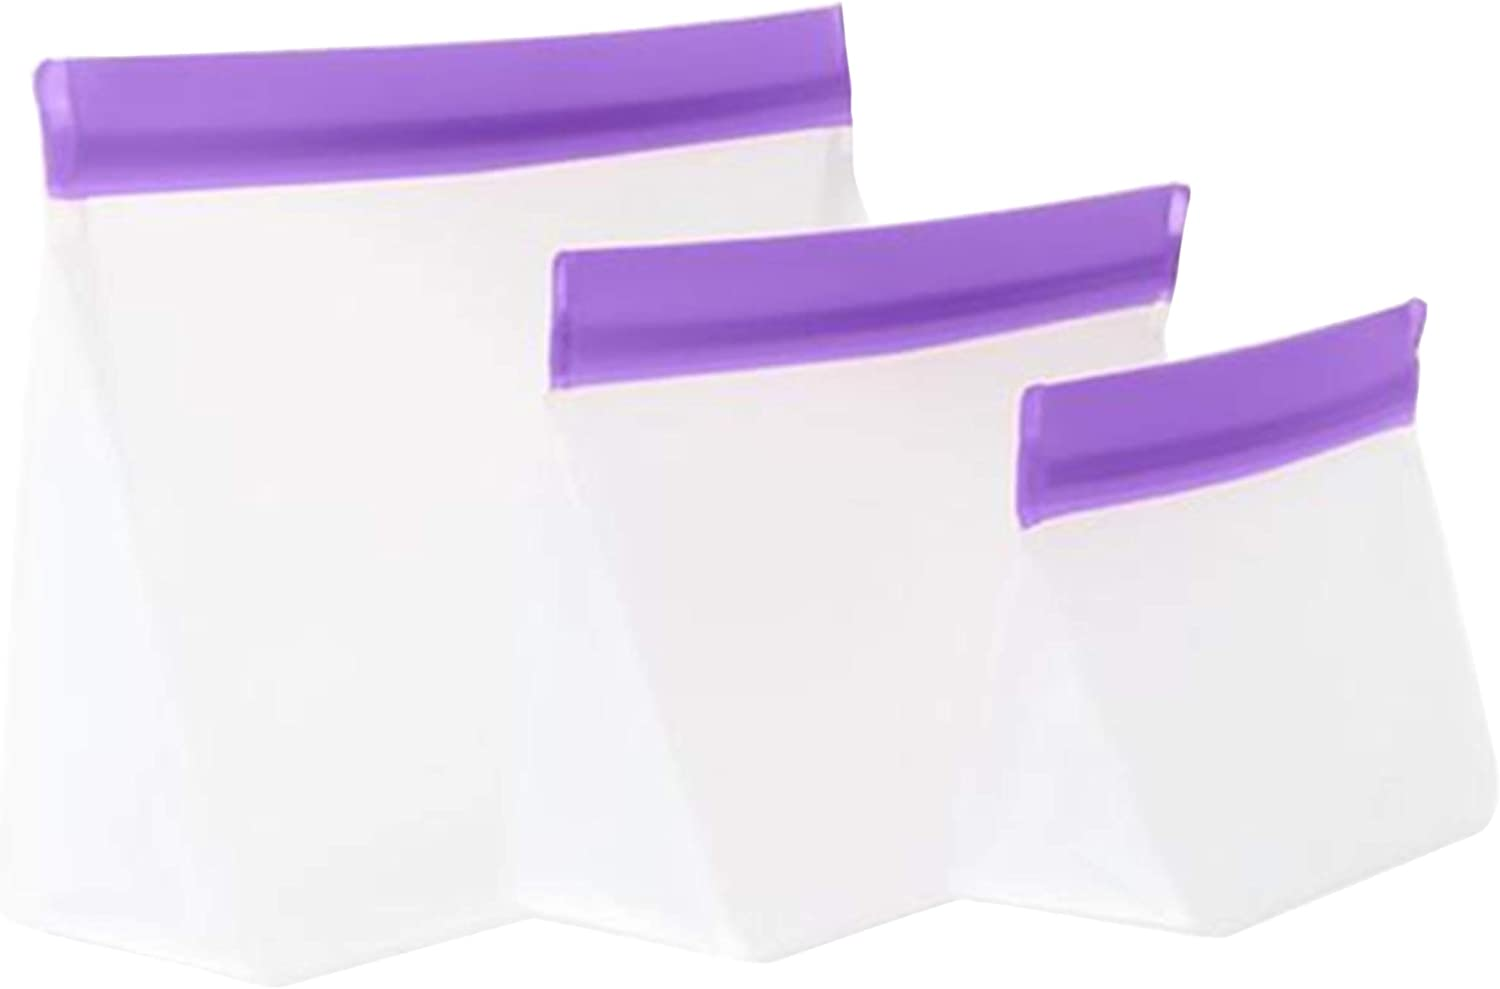 mumi Reusable Zip Up Bags | Food Storage Bags, Travel Organizer | Airtight and Leak-proof Seal | Expandable Base | Set of 3 Reusable Bags (10 x 7, 8 x 5, 6 x 4 inches) (Purple)